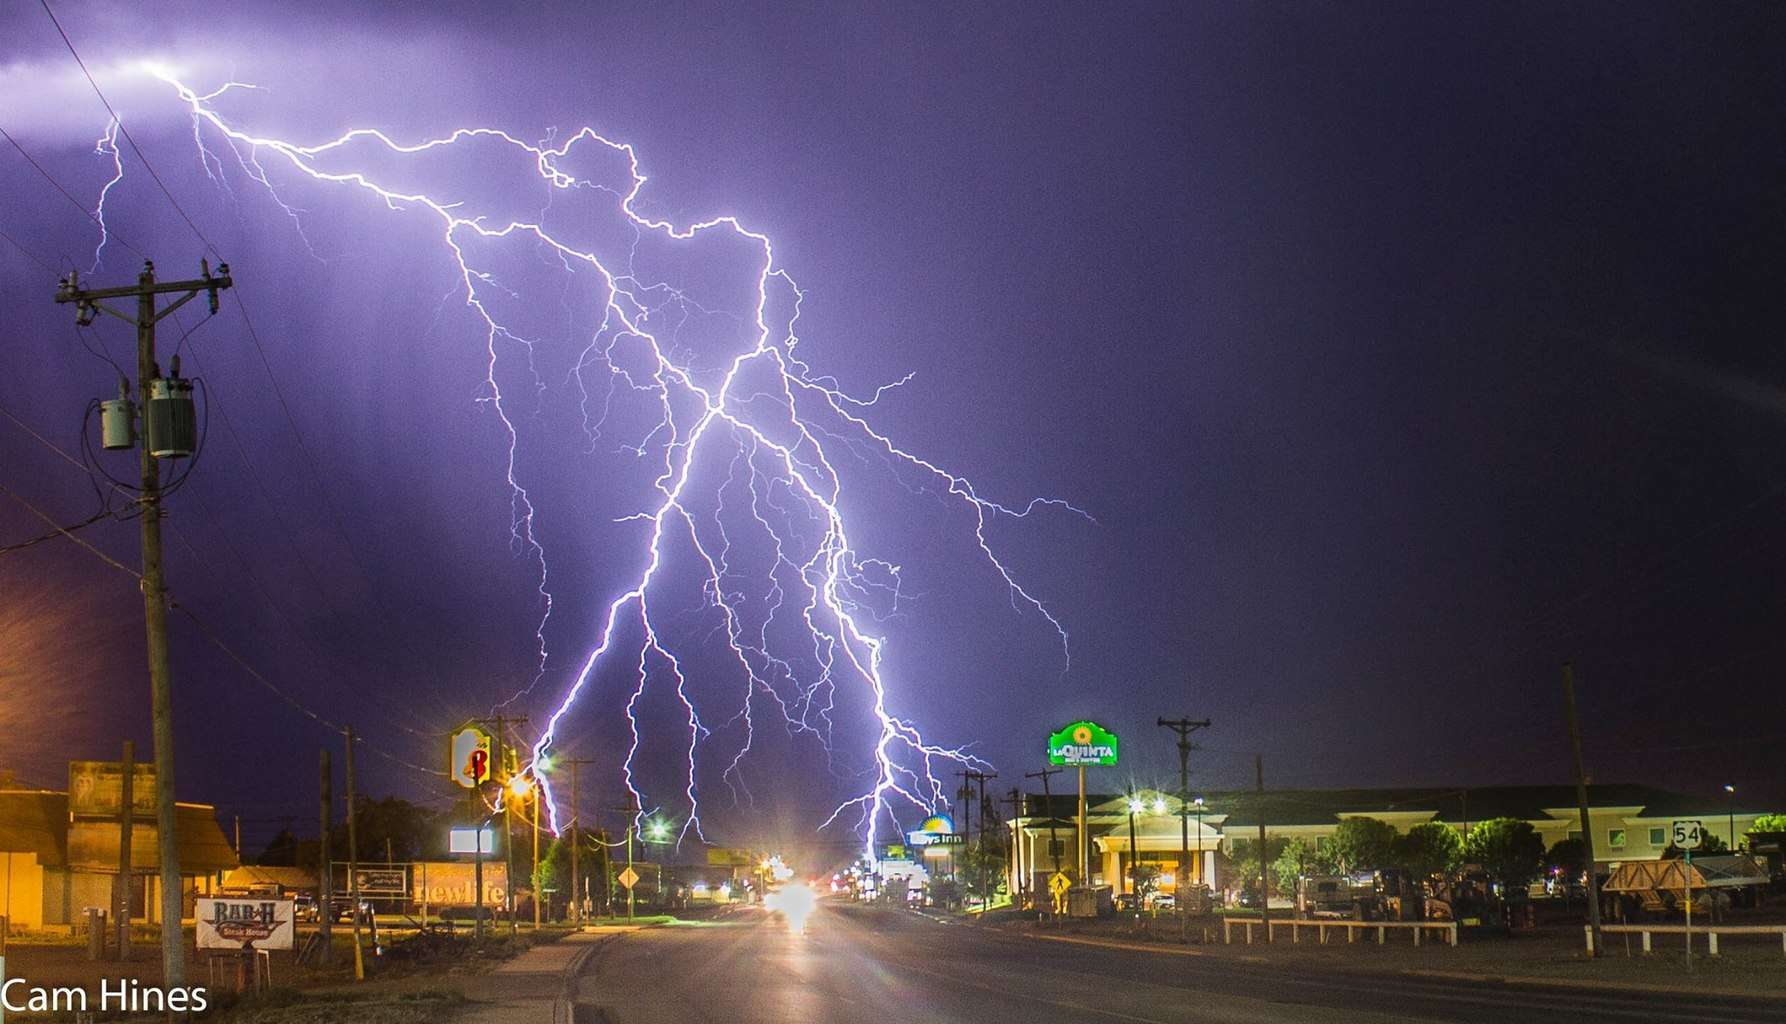 May 29 in Dalhart, Texas. This incredible display of angry CG lightning moved right through the centre of town itself!